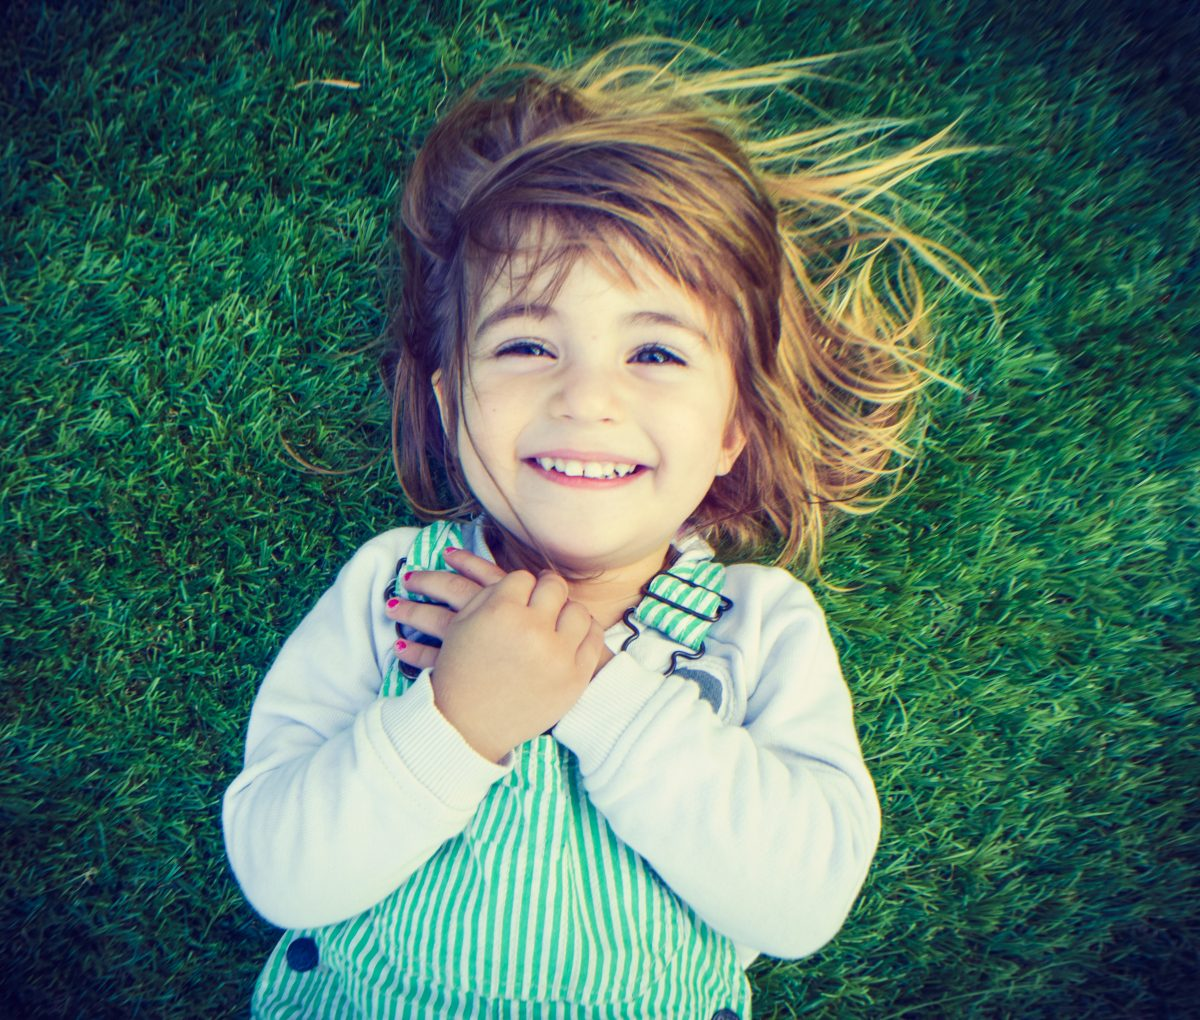 Adorable little girl laying on a carpet of green grass